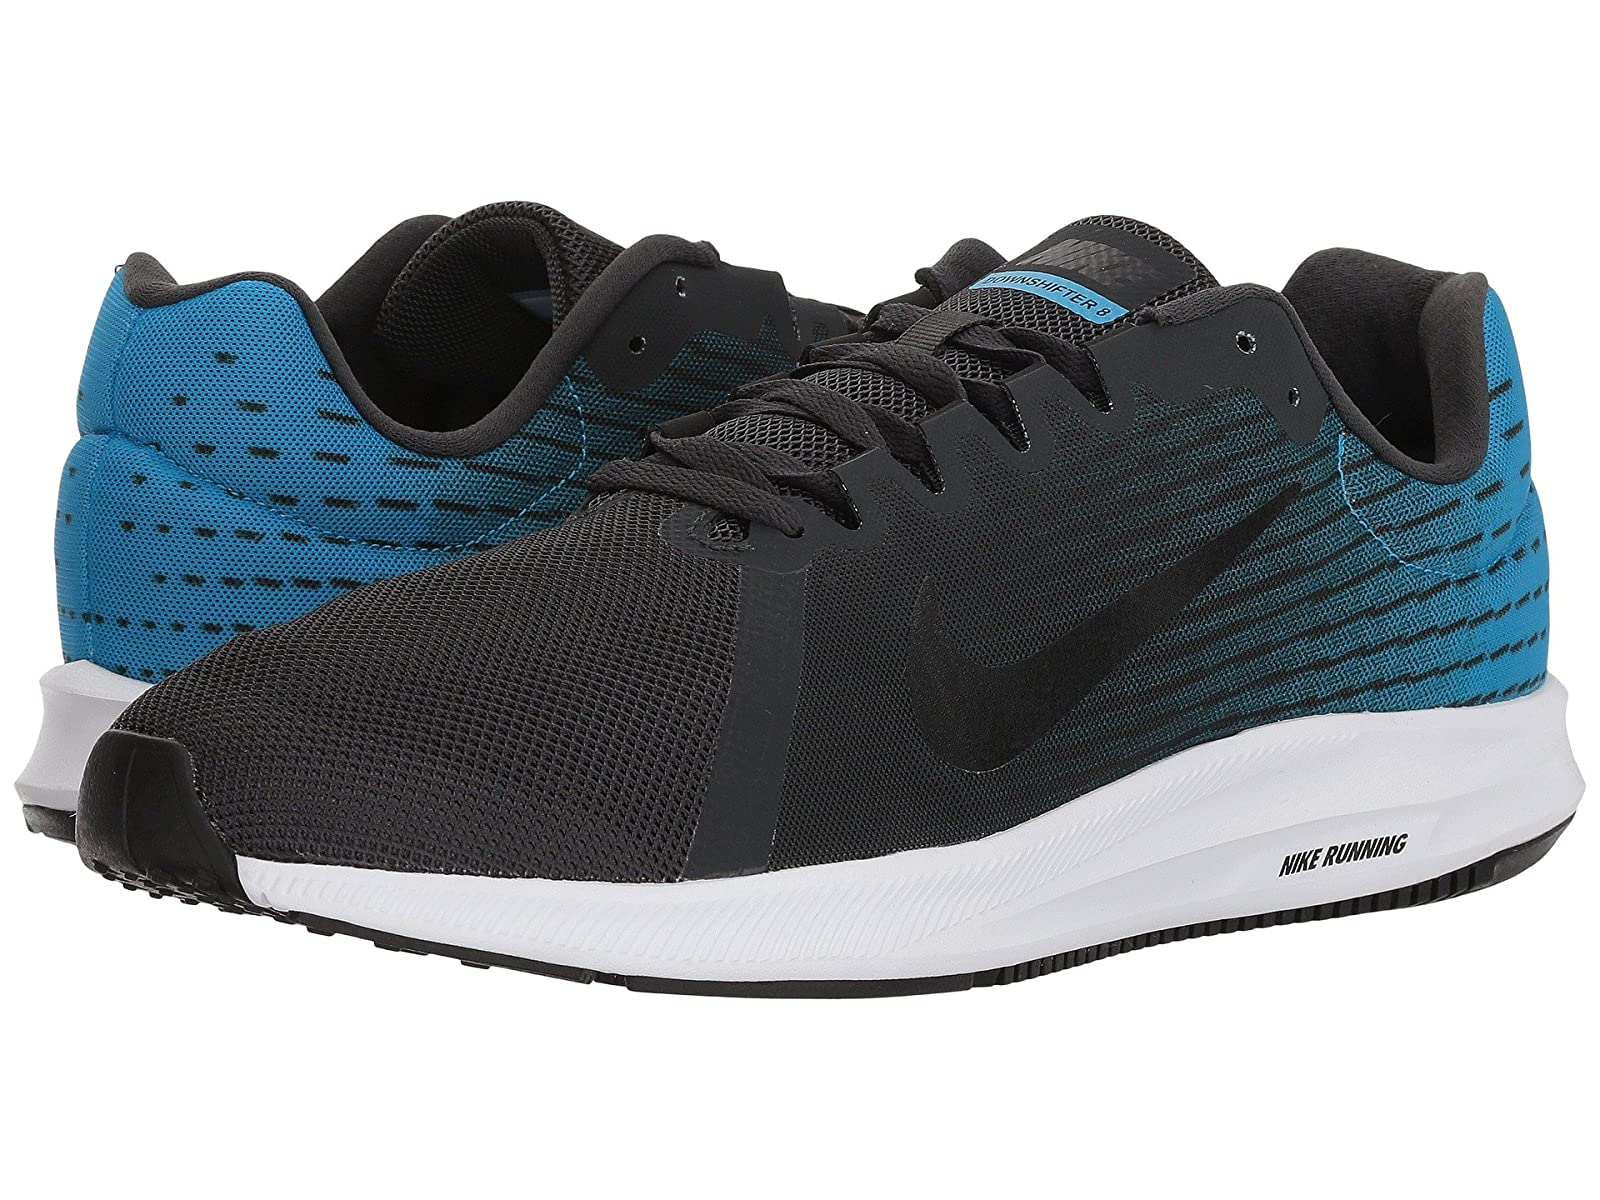 Nike Downshifter 8Atmospheric grades have affordable shoes